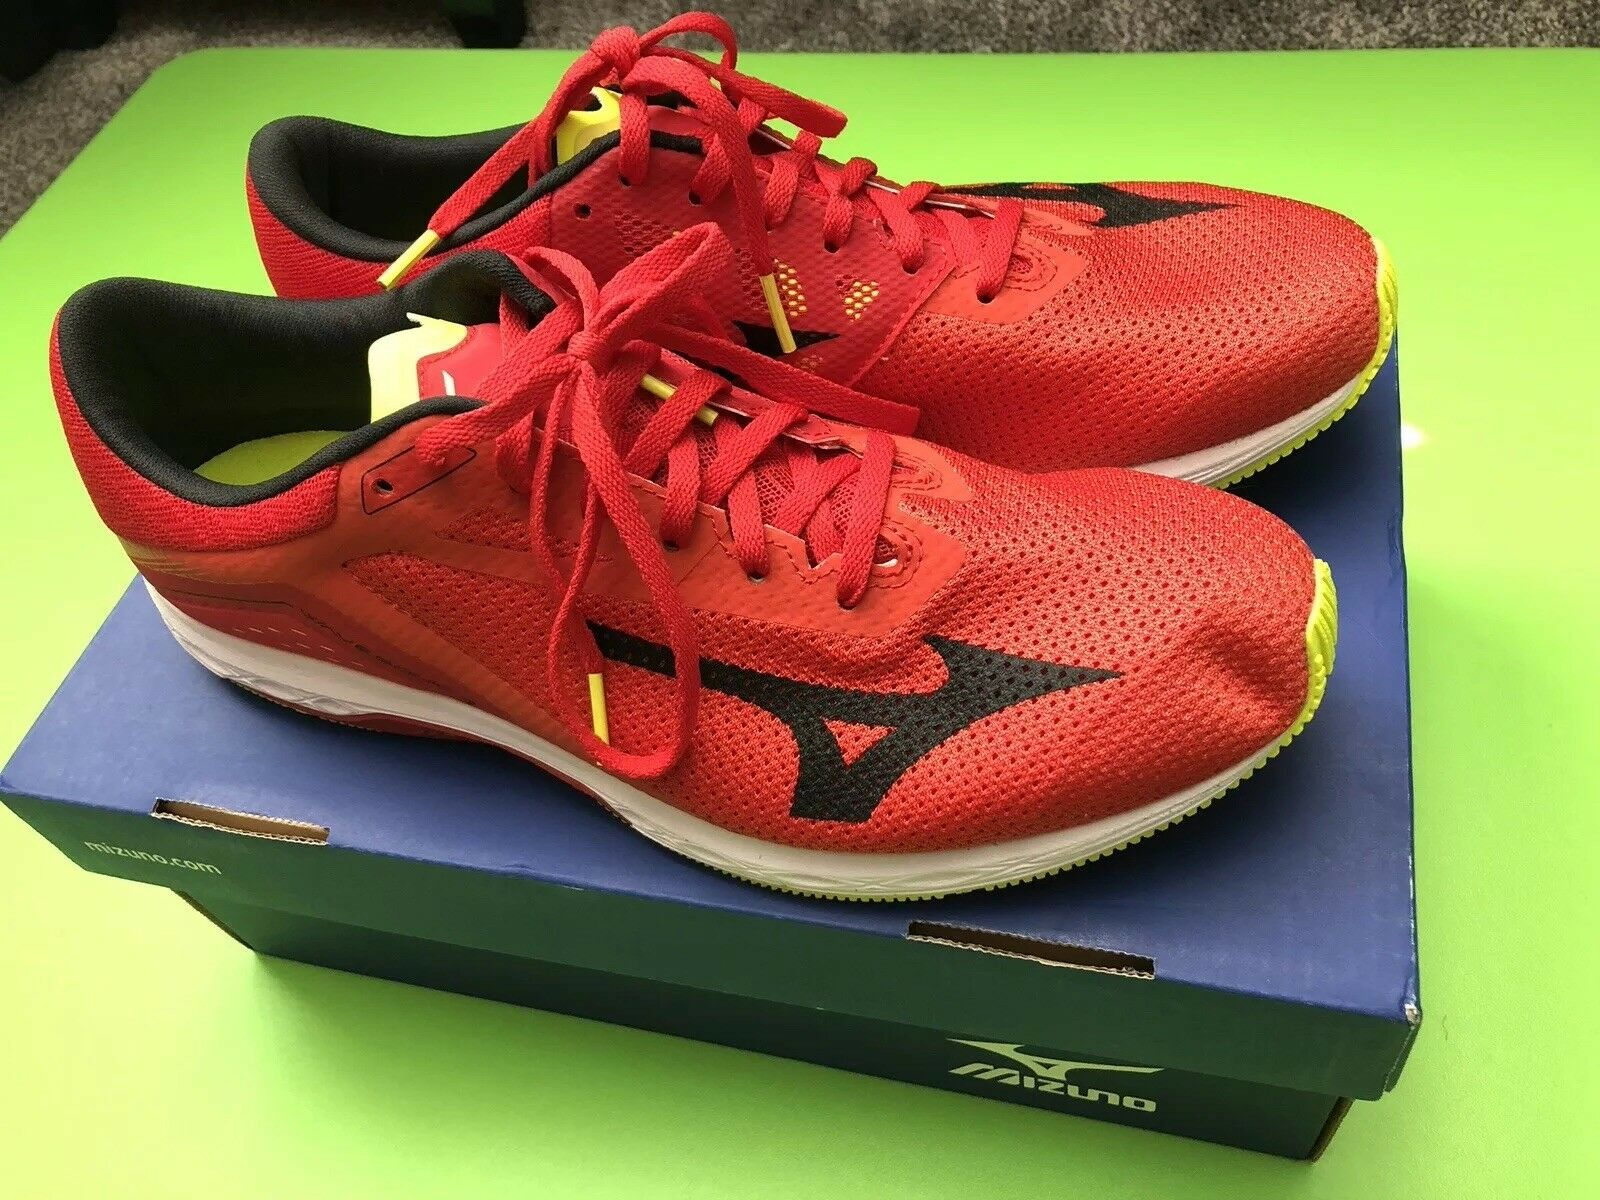 Wave Sonic Mens Size 10.5 Running shoes Red Black Yellow